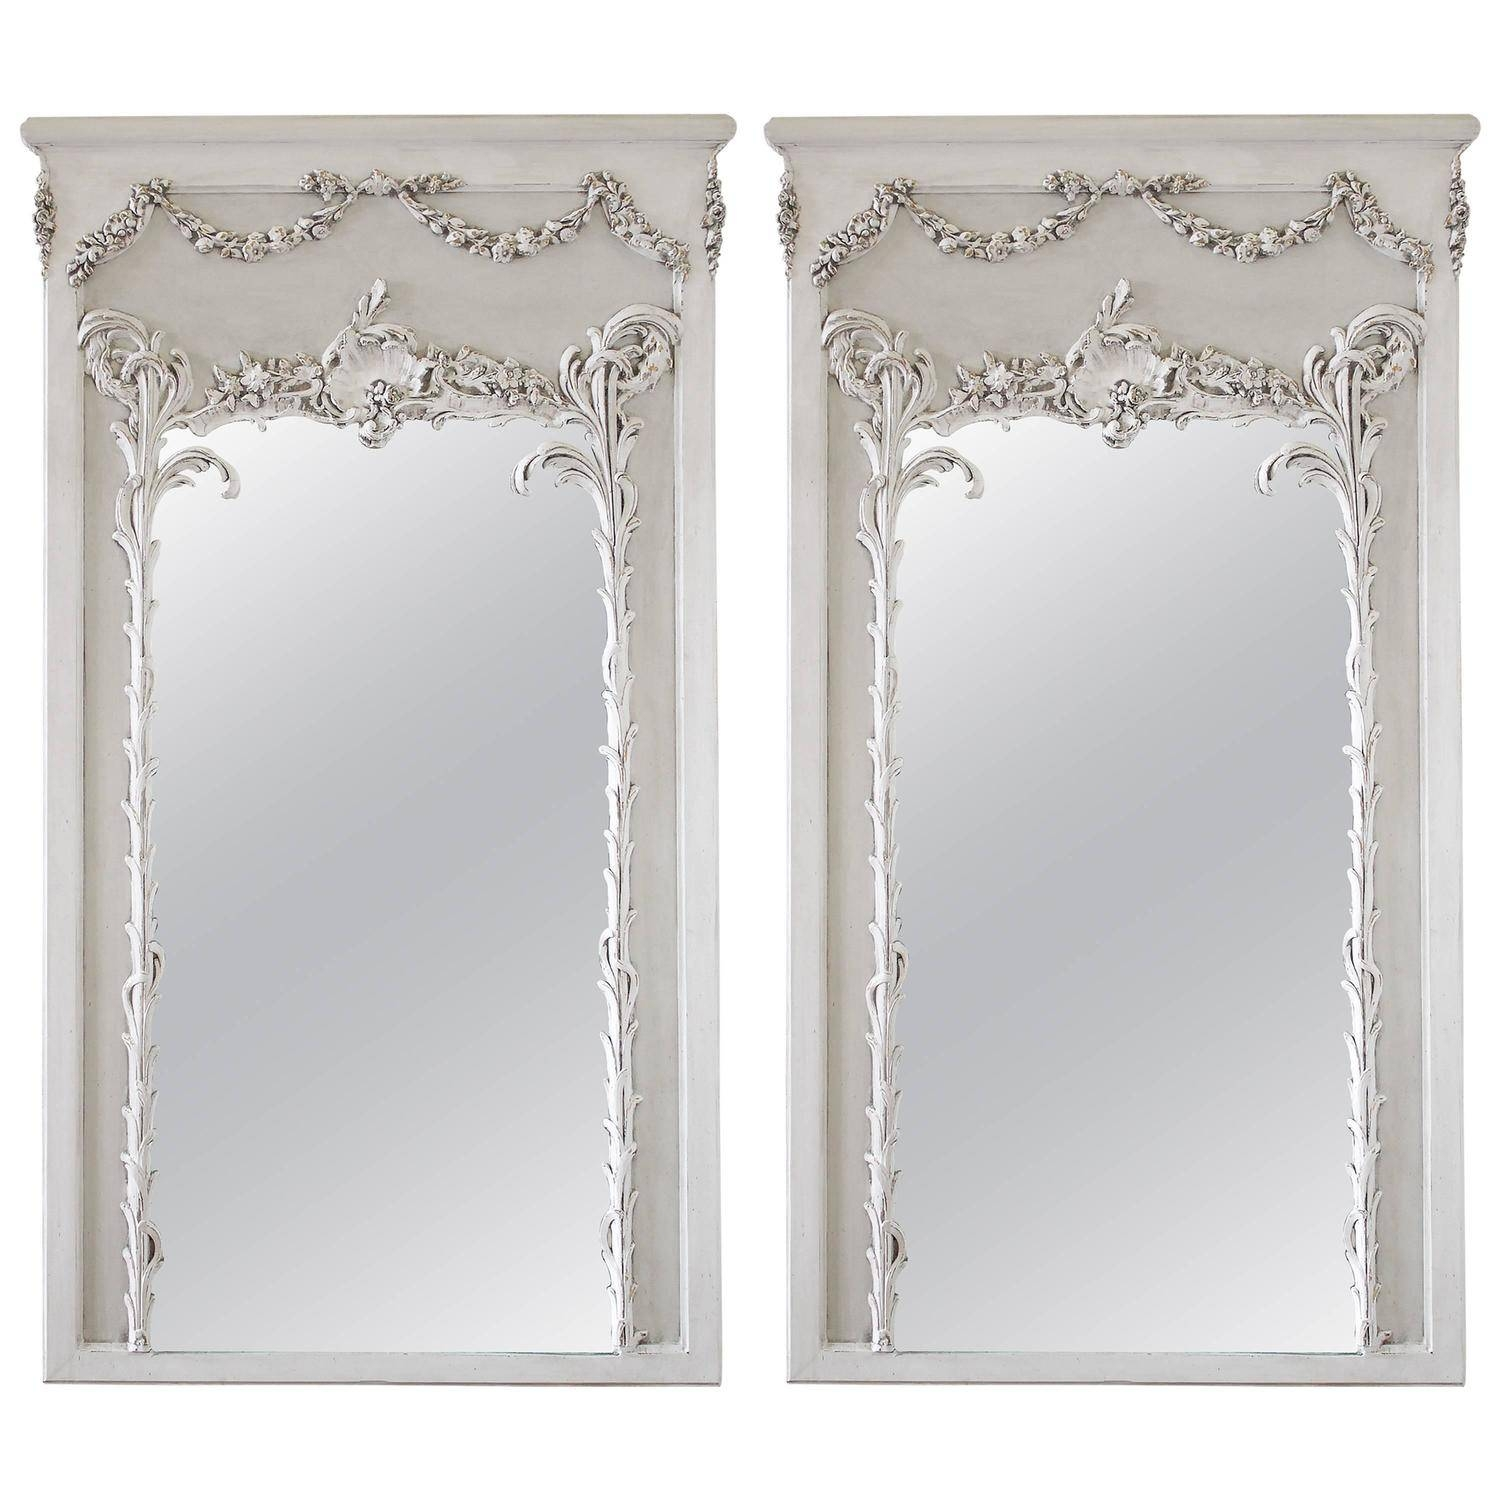 Antique Trumeau Mirrors For Sale In California - 1Stdibs with White French Mirrors (Image 14 of 25)